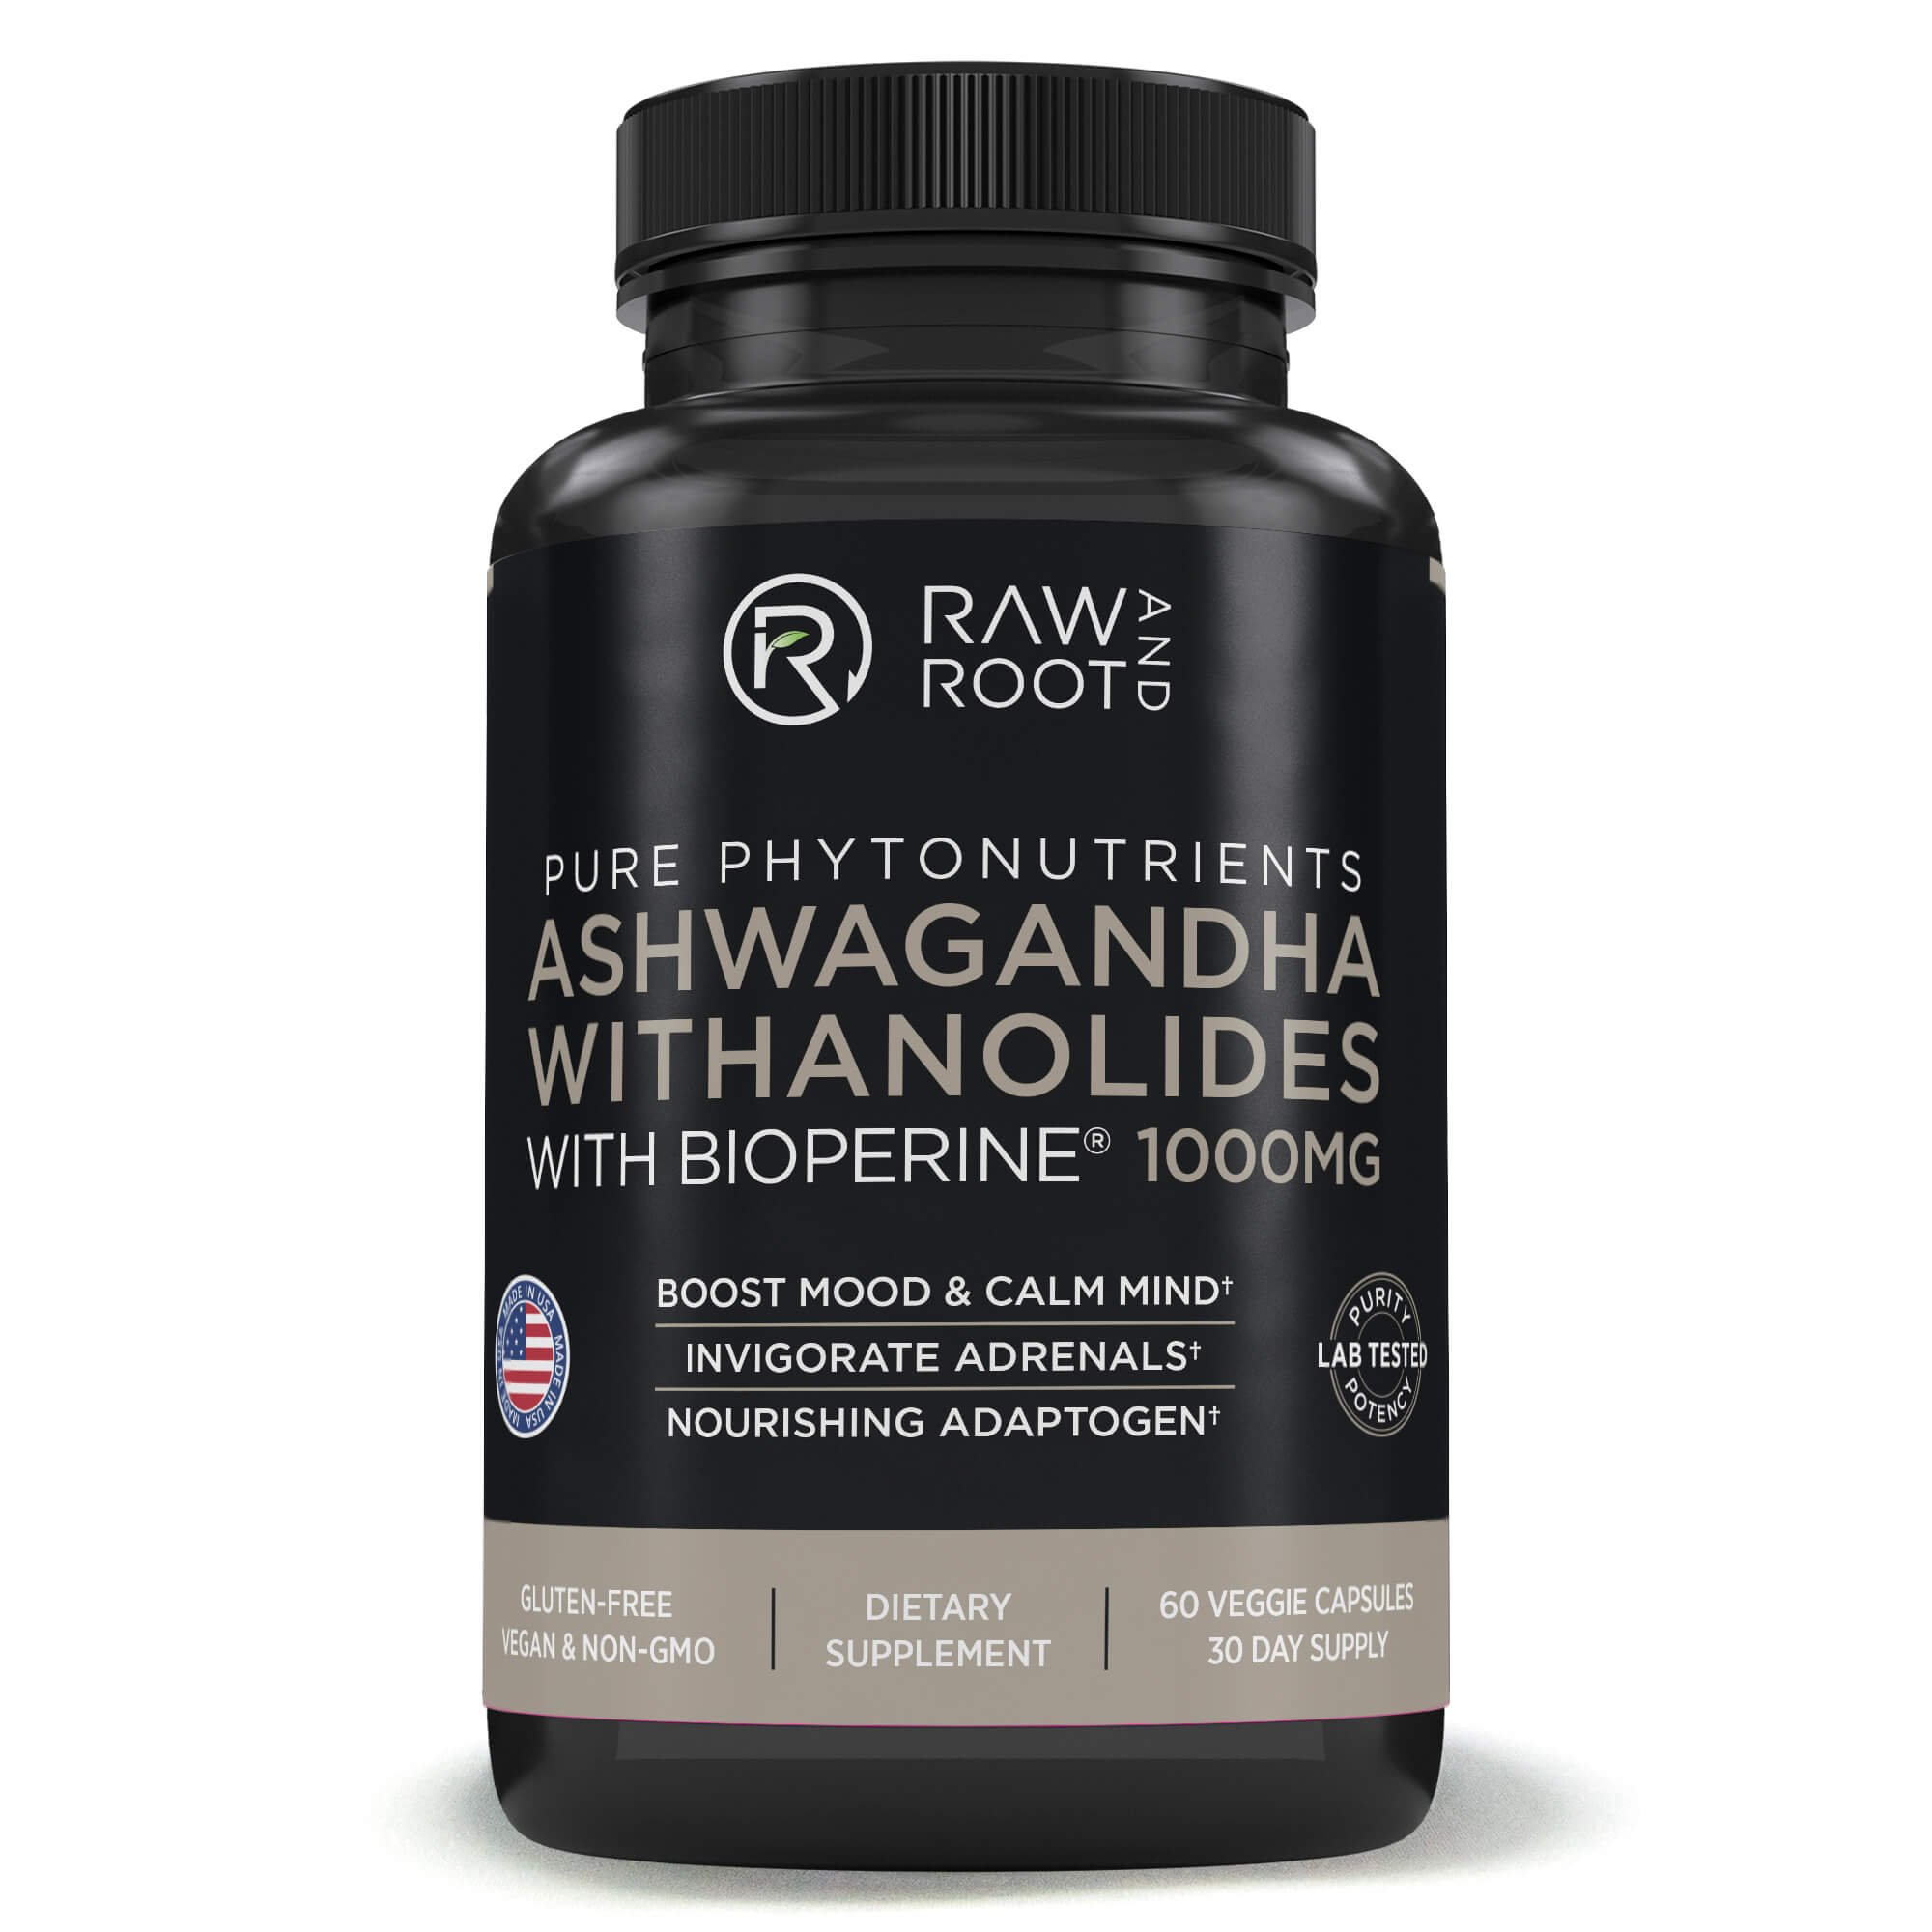 ASHWAGANDHA WITHANOLIDES with BIOPERINE - Adaptogen, Anxiety & Stress Relief, Adrenal Support - Dietary Supplement - 60 Vegetarian Capsules